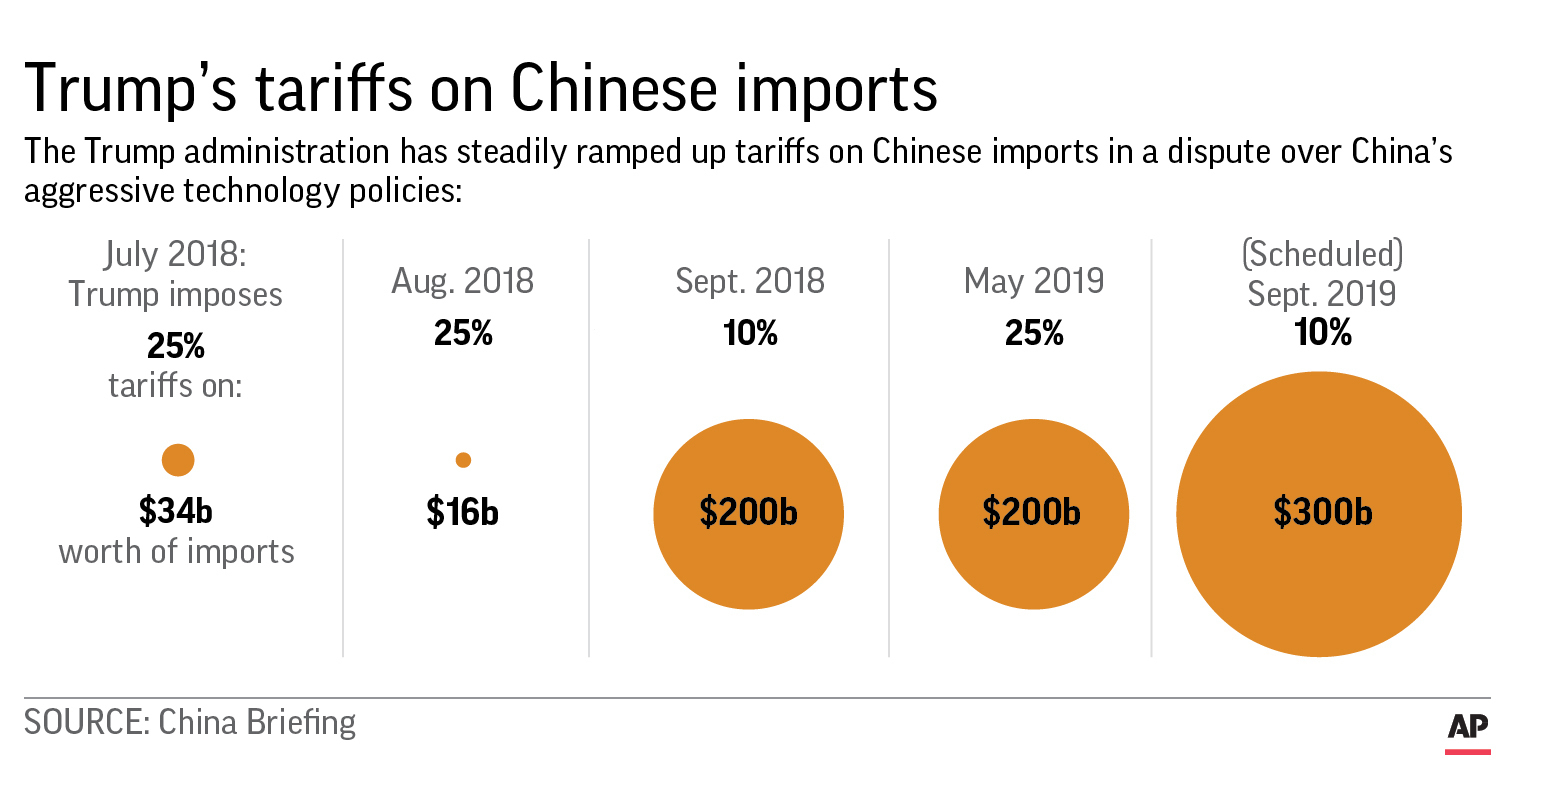 Trump tariffs on Chinese imports